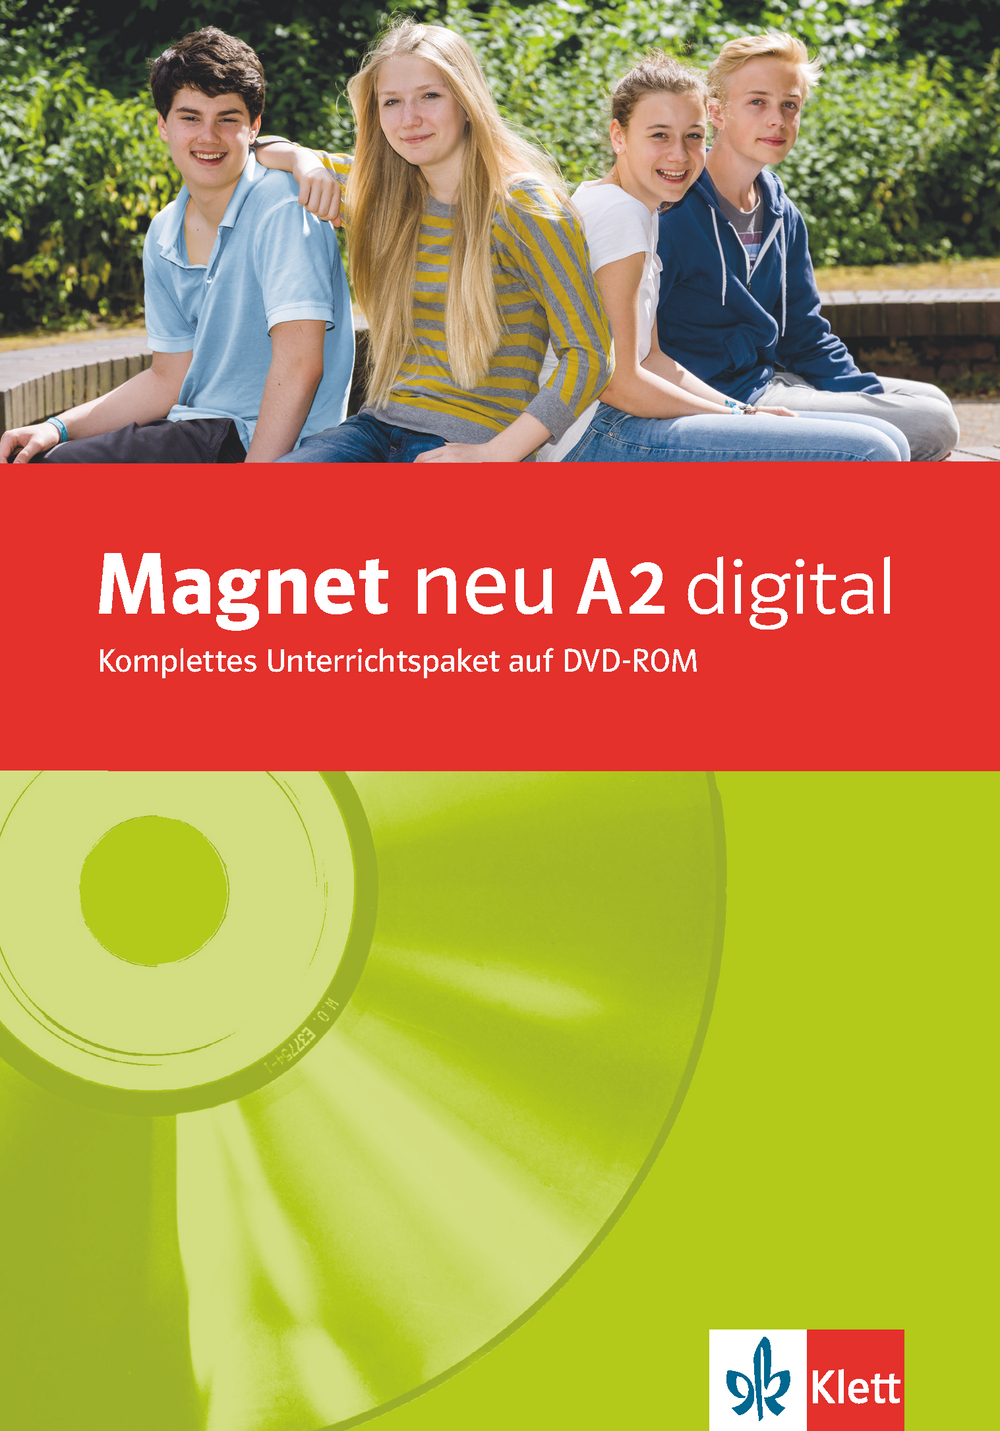 Magnet neu A2 digital